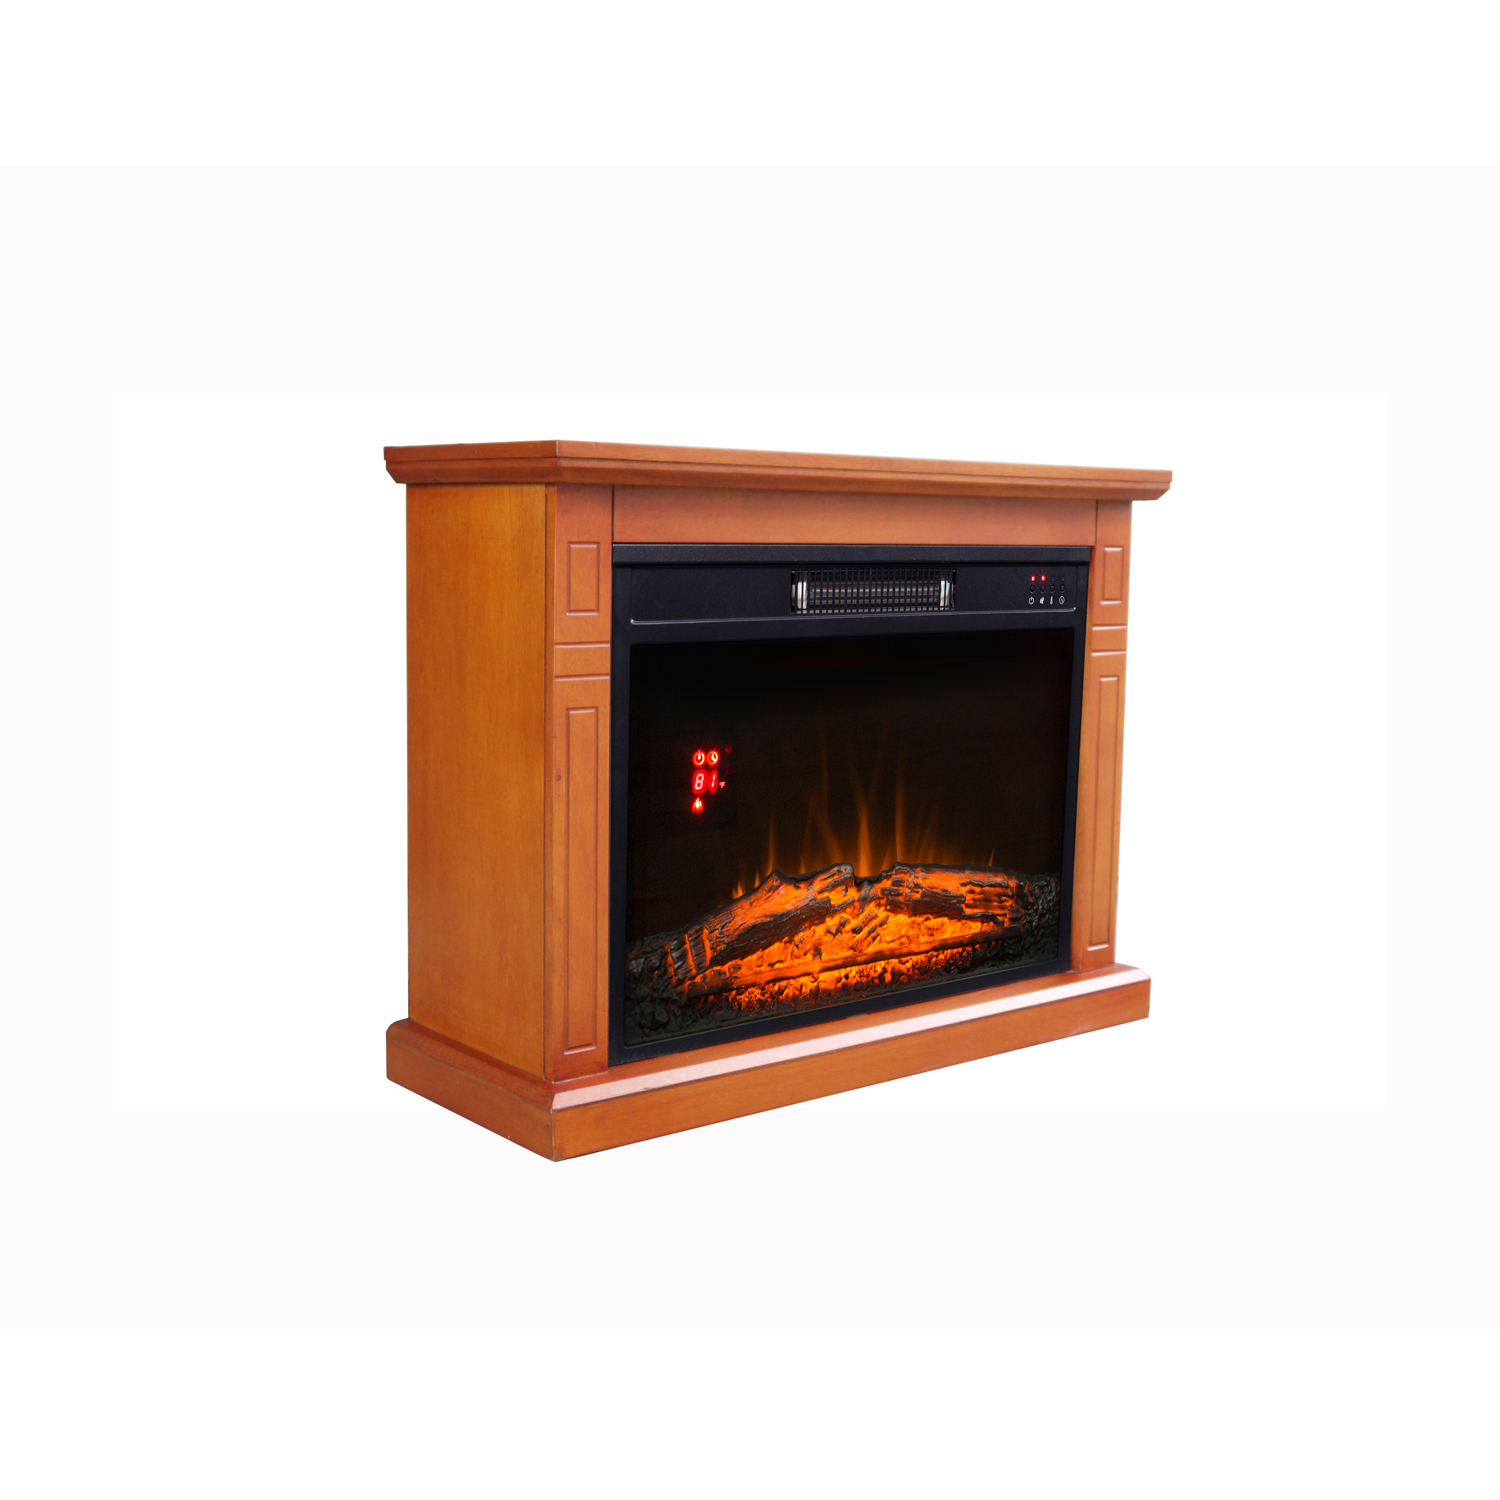 "Decor Flame Electric Fireplace with 29"" Mantle"